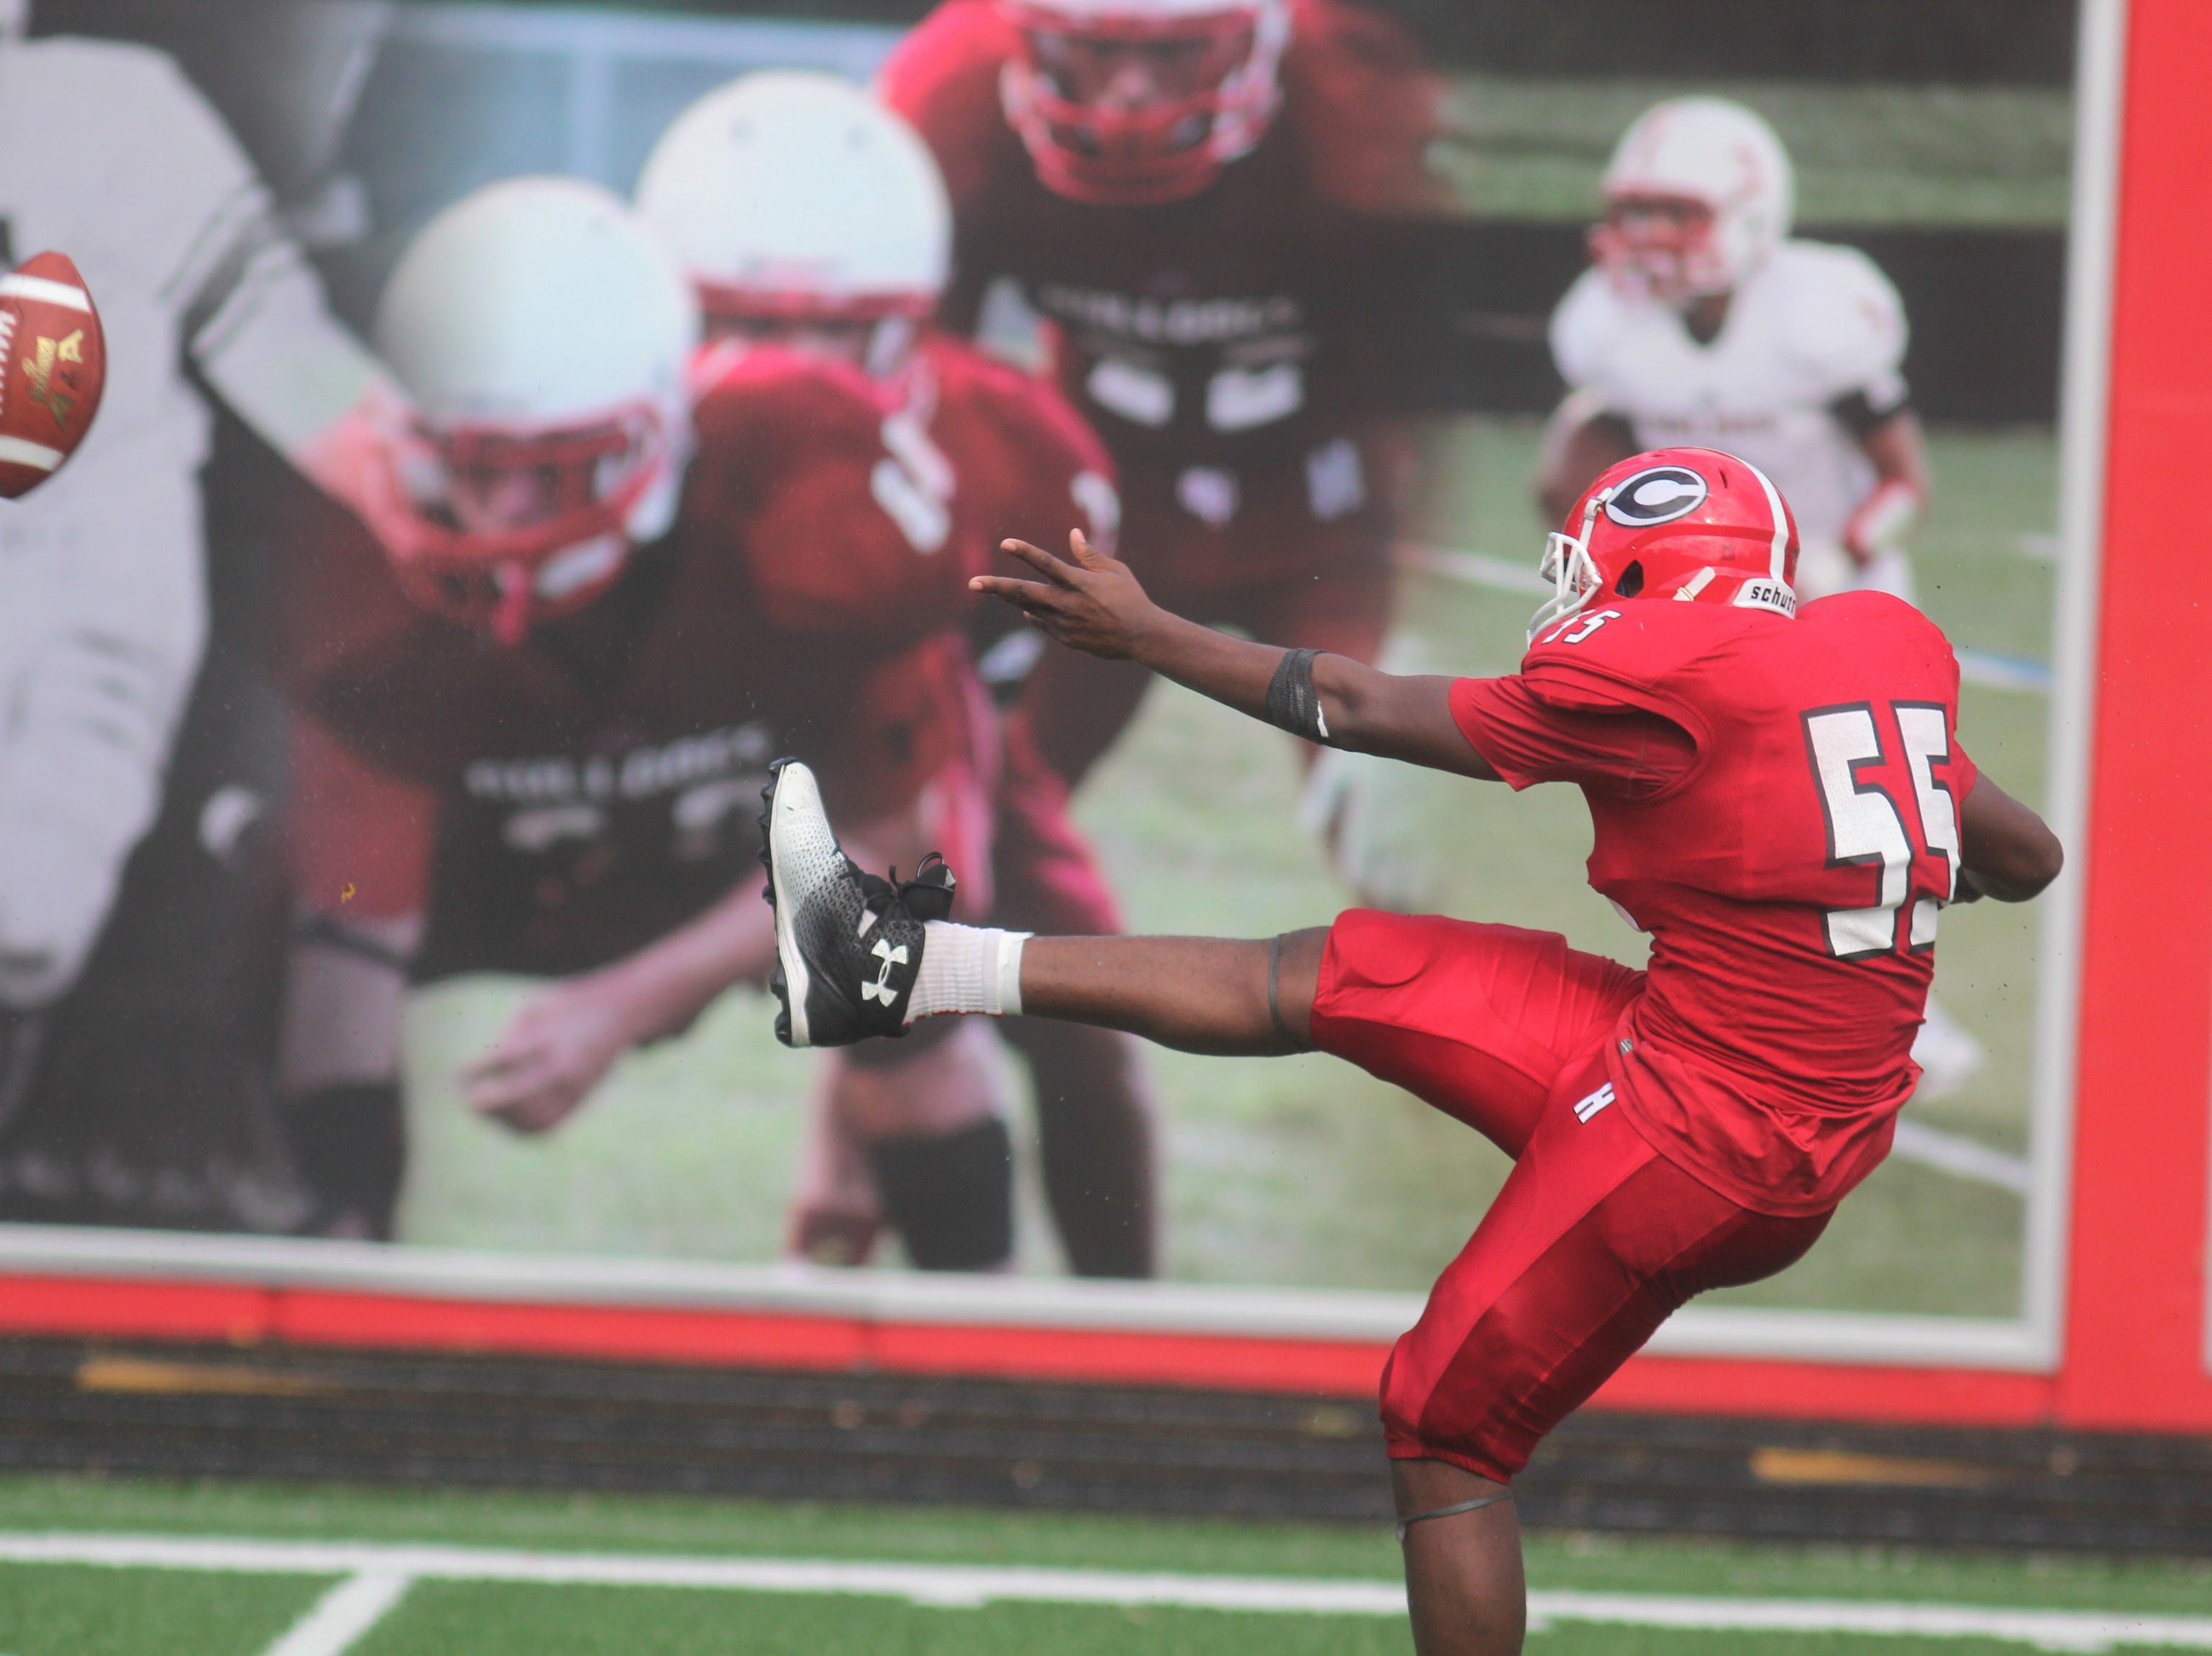 Holmes punter unleashes a kick during Walton-Verona's 48-0 win over Holmes Sept. 1 at Holmes High School. The game concluded on Saturday morning after being suspended at halftime because of weather.